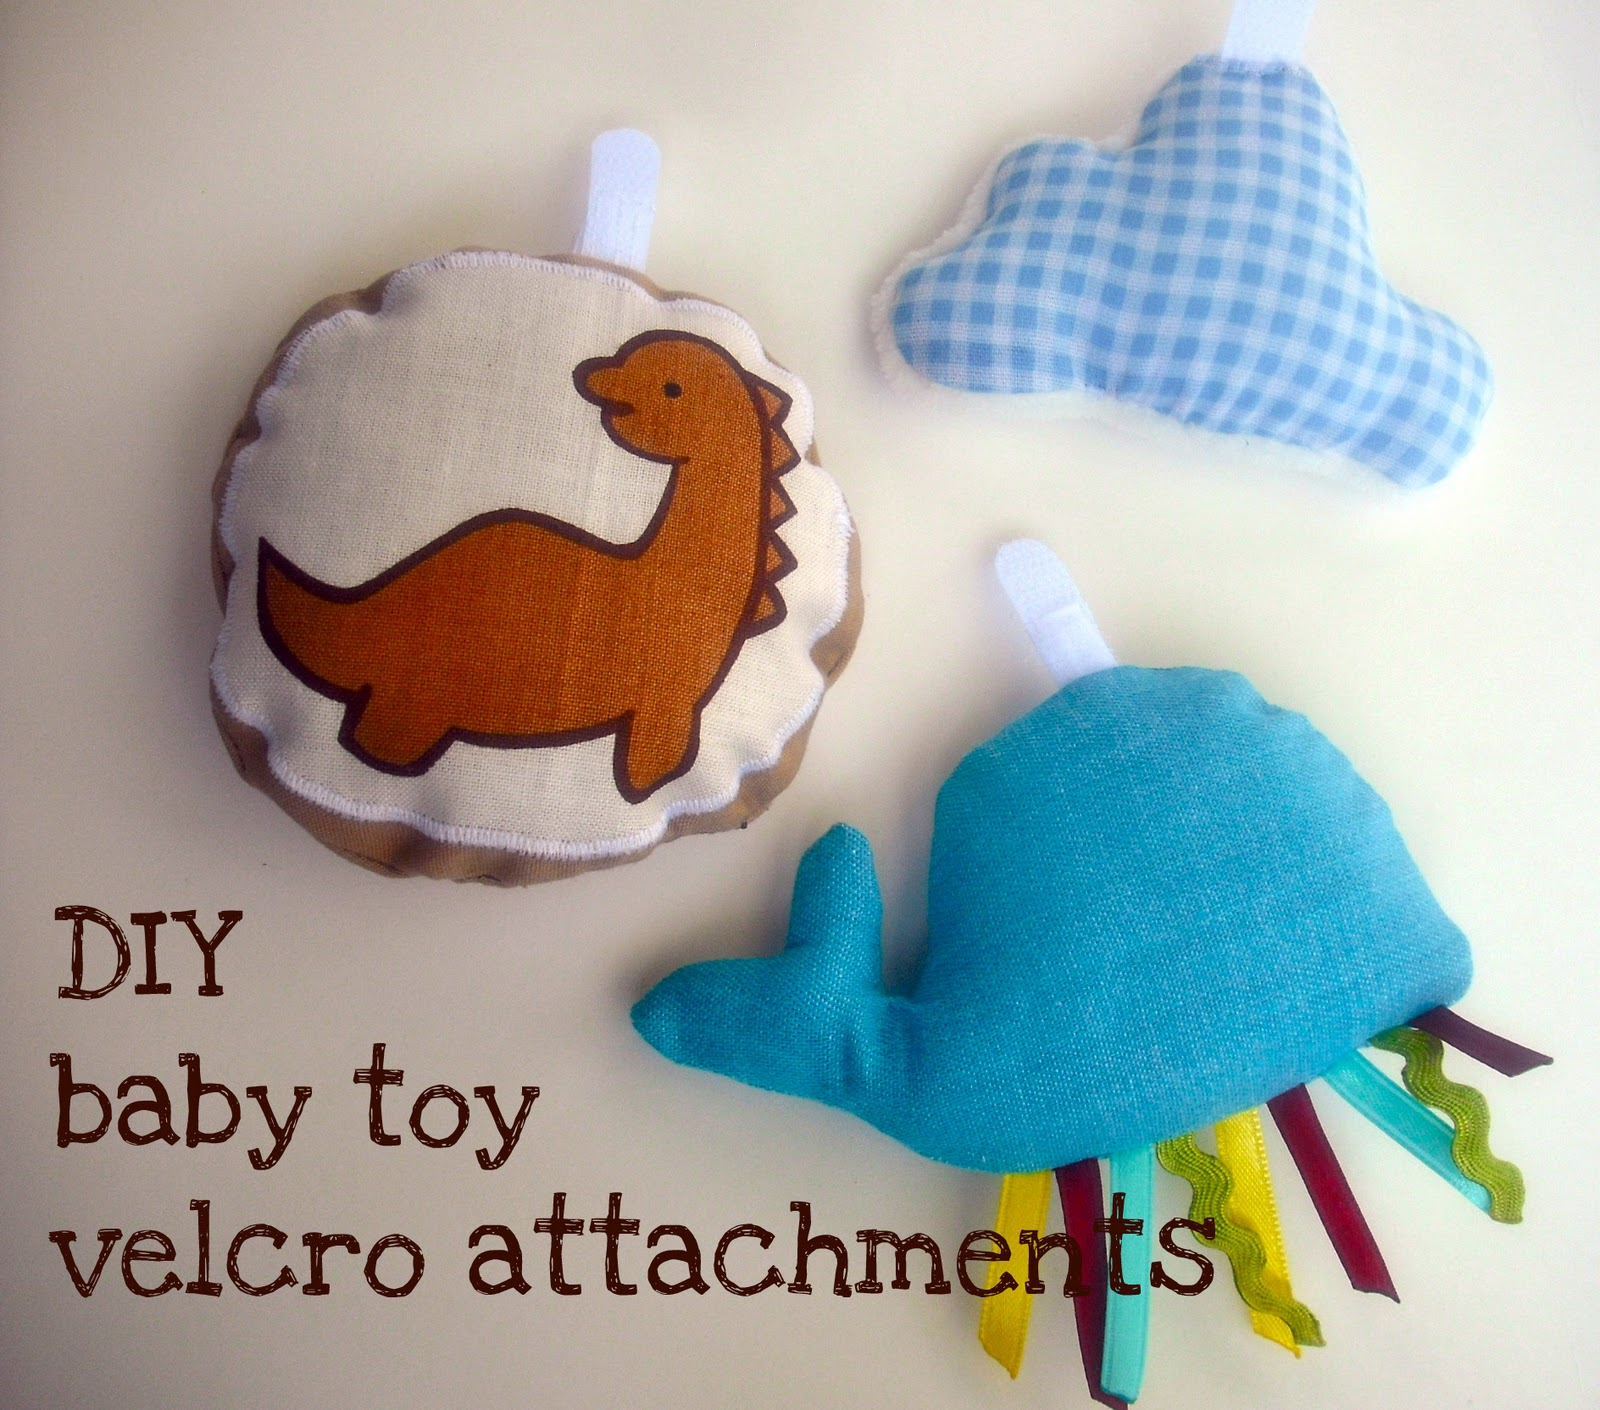 bedtime tales: DIY baby toy velcro attachments